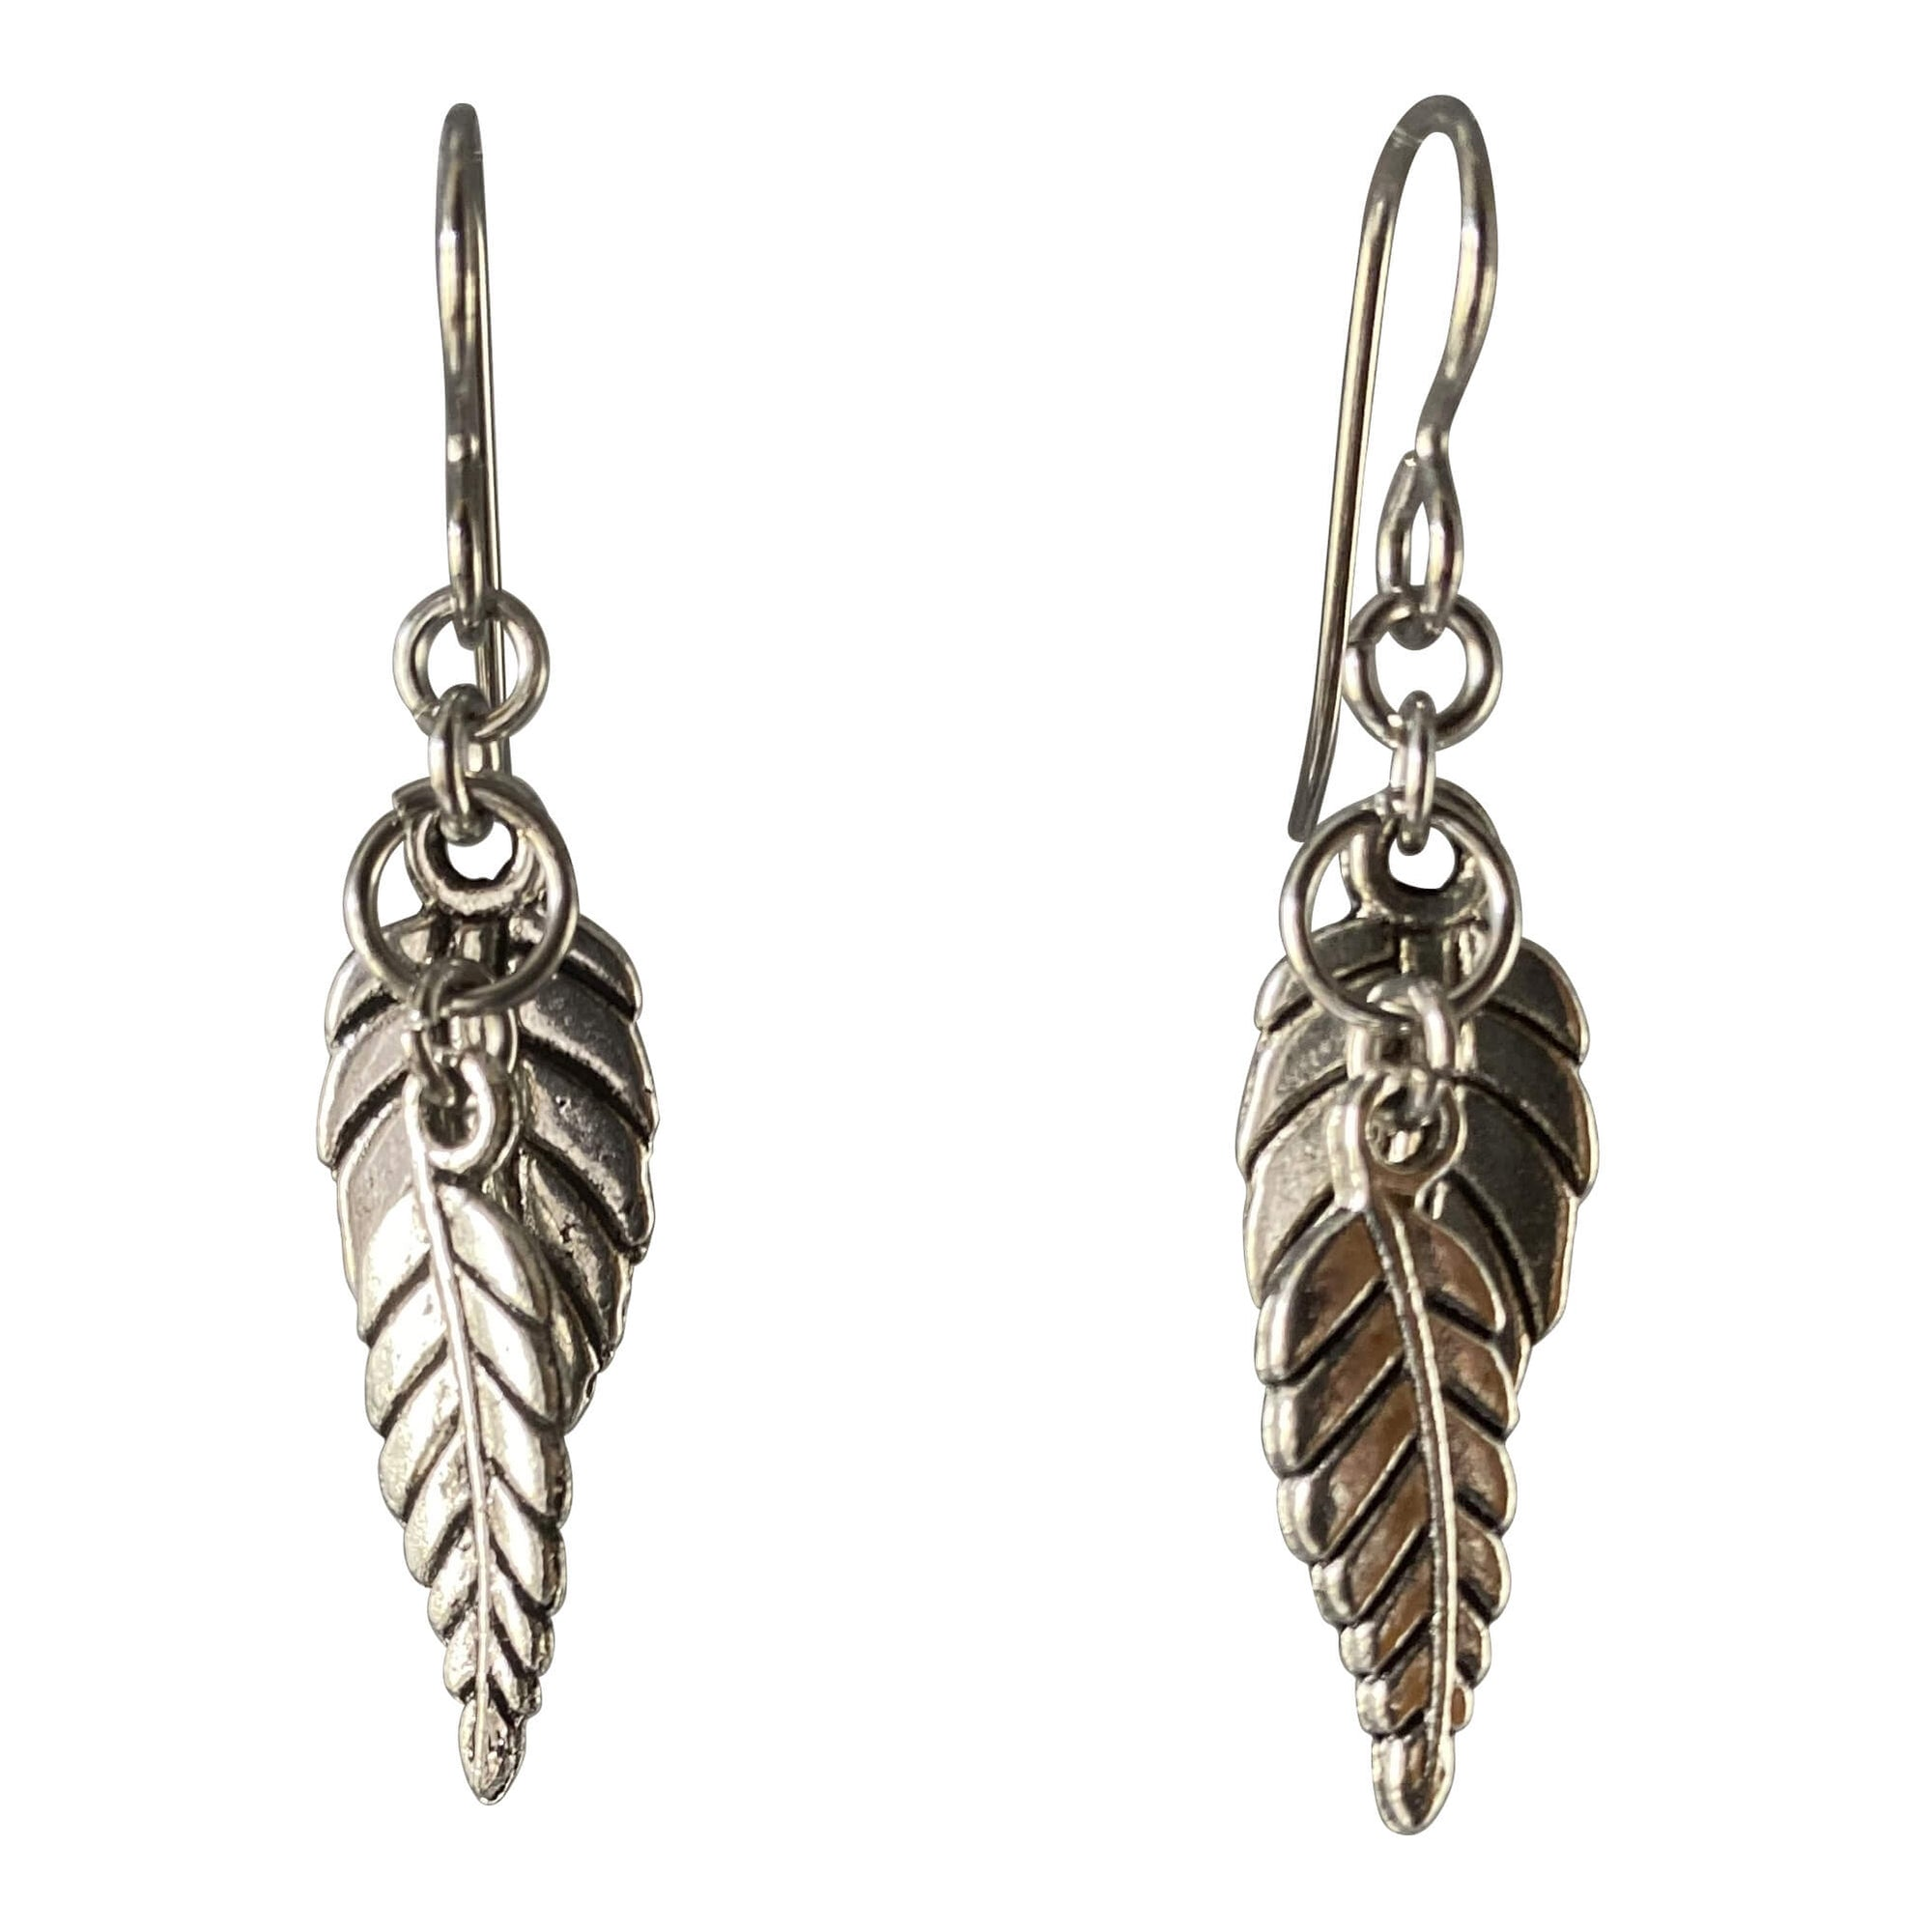 Silver Leaf Dangle Earrings for Sensitive Ears-Earrings- Creative Jewelry by Marcia